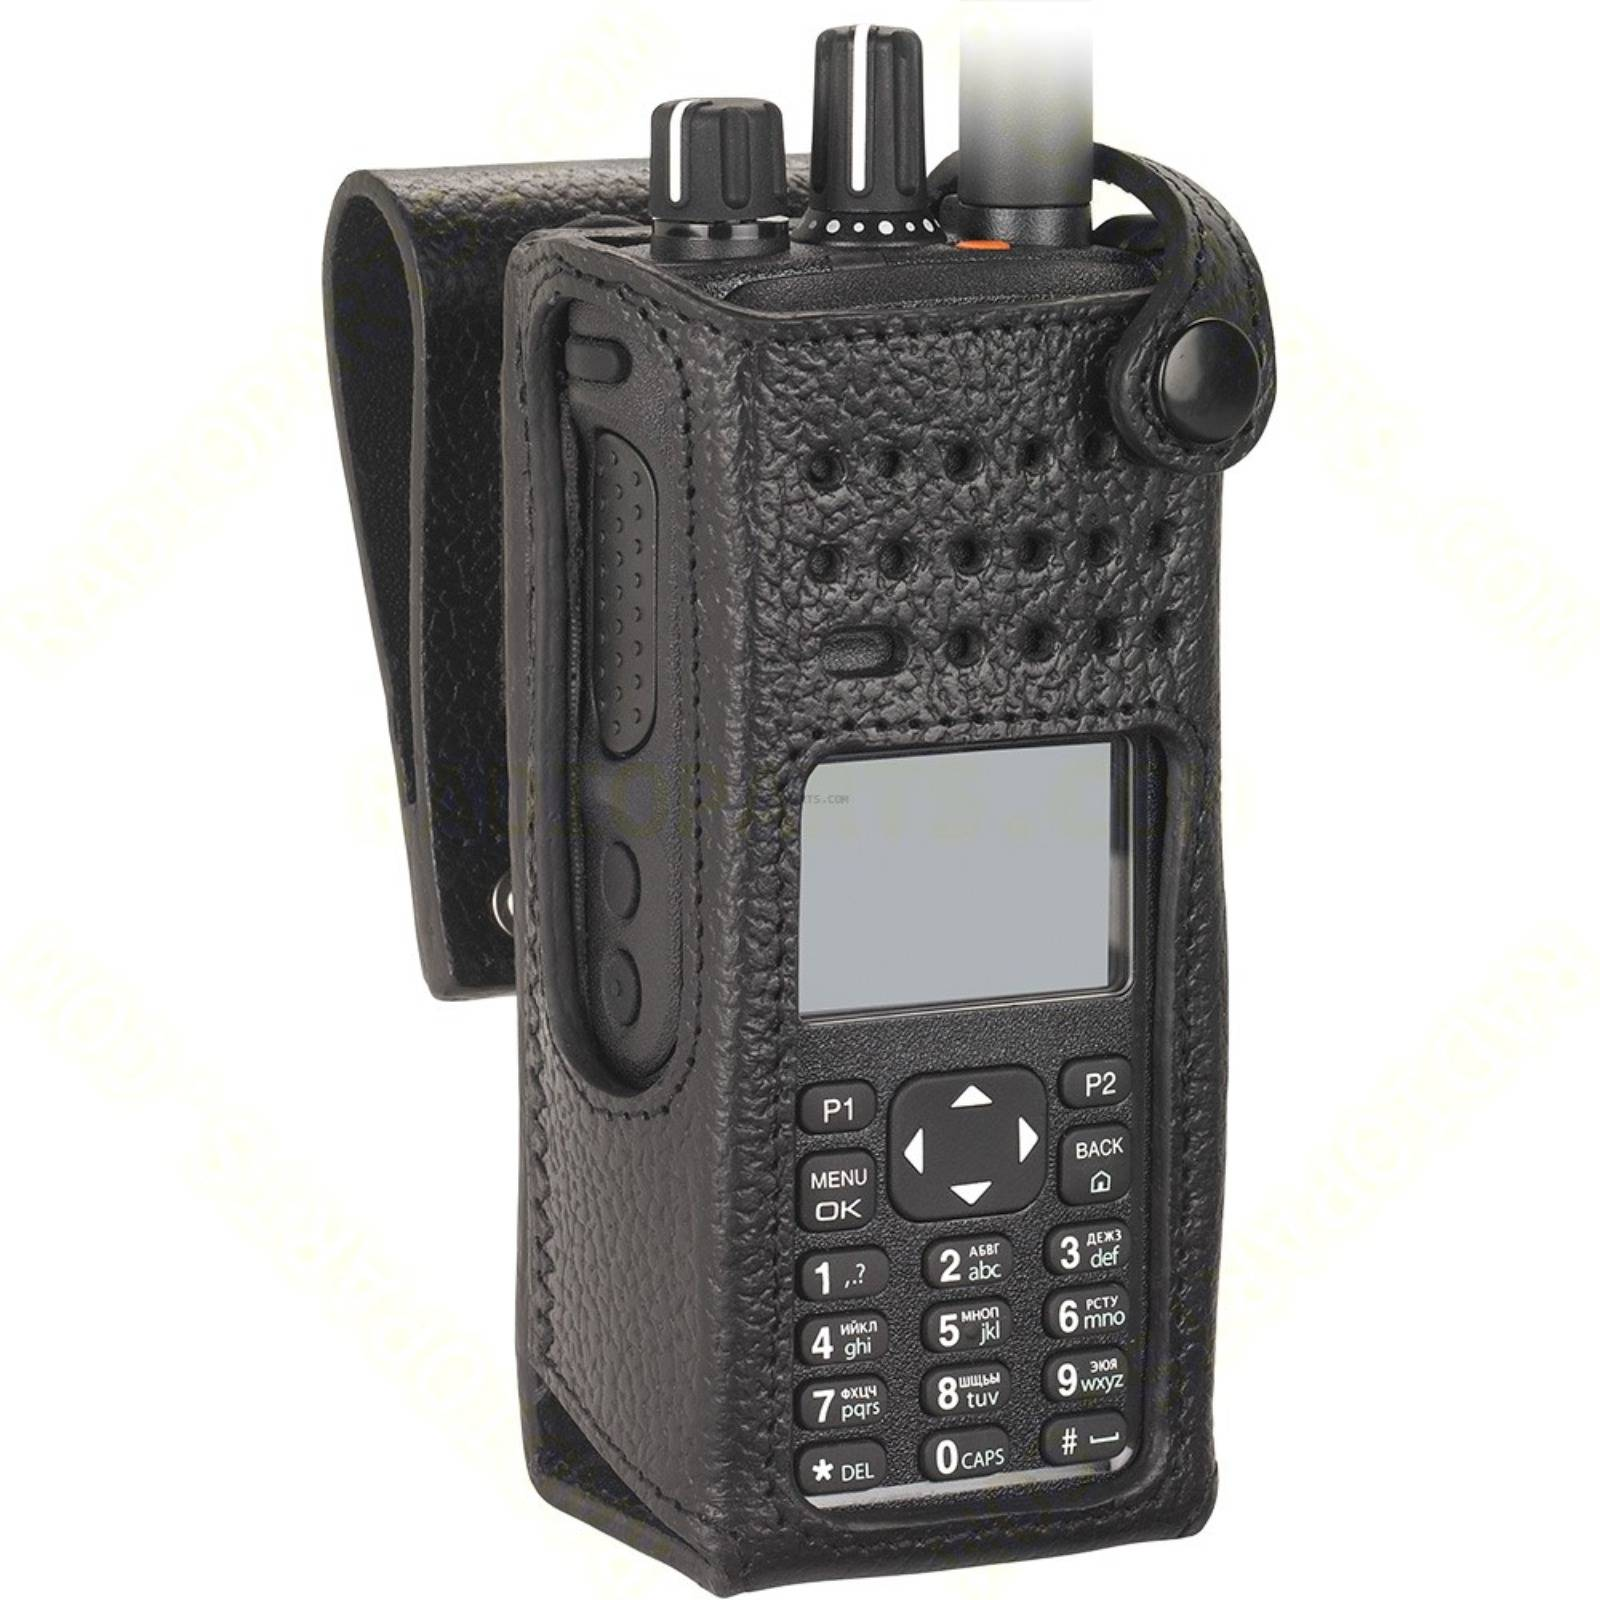 HARD LEATHER CARRY CASE DISPLAY RADIO - DP2000 SERIES